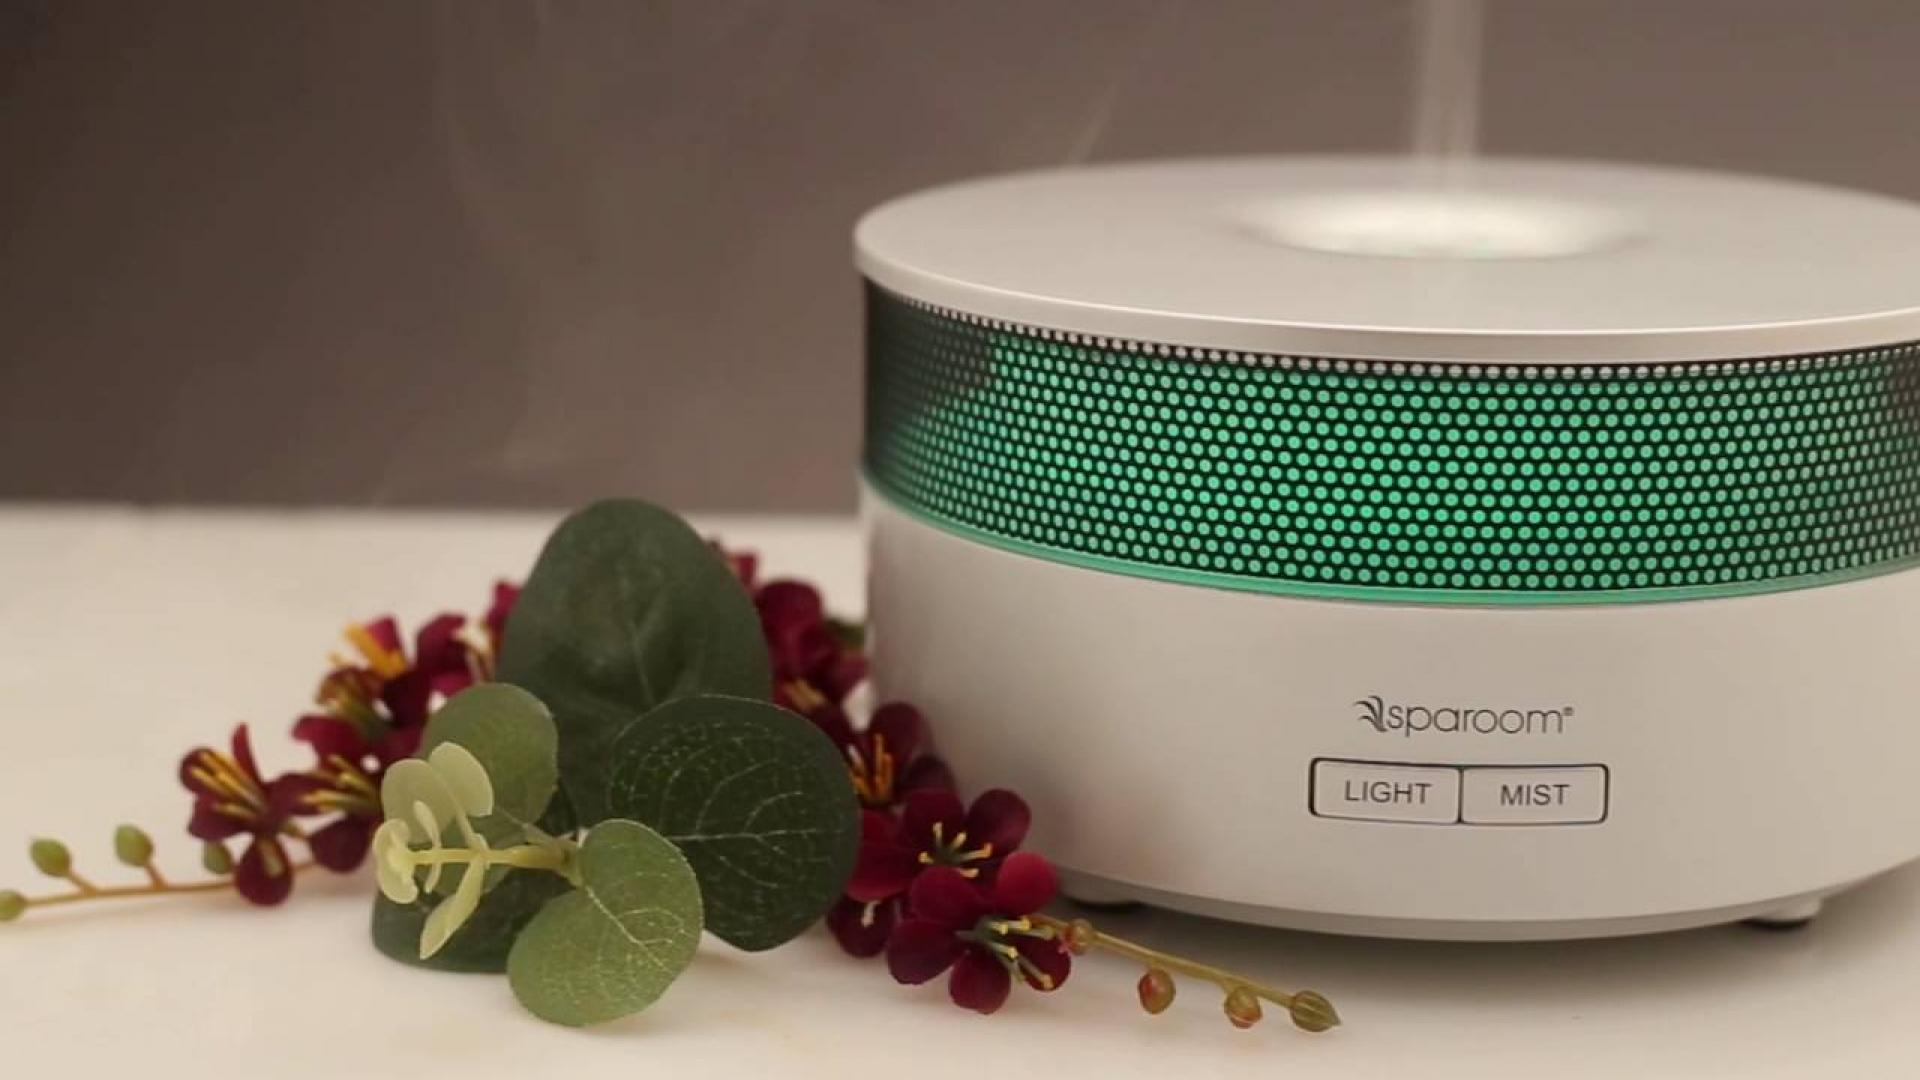 AromaMist Ultrasonic Diffusing Mister